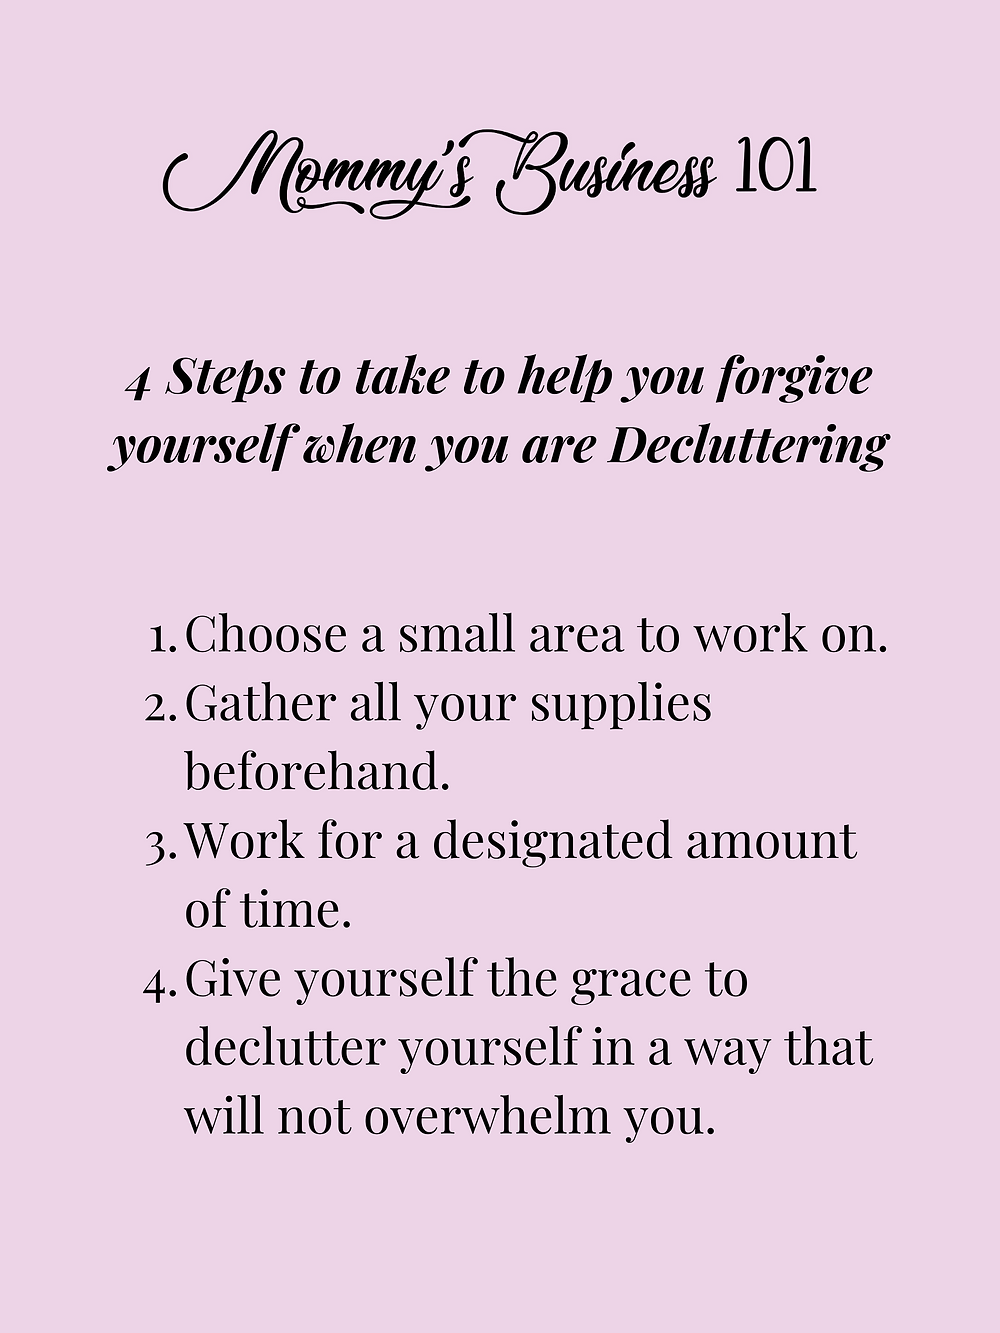 4 Steps To Help Forgive Yourself When Decluttering